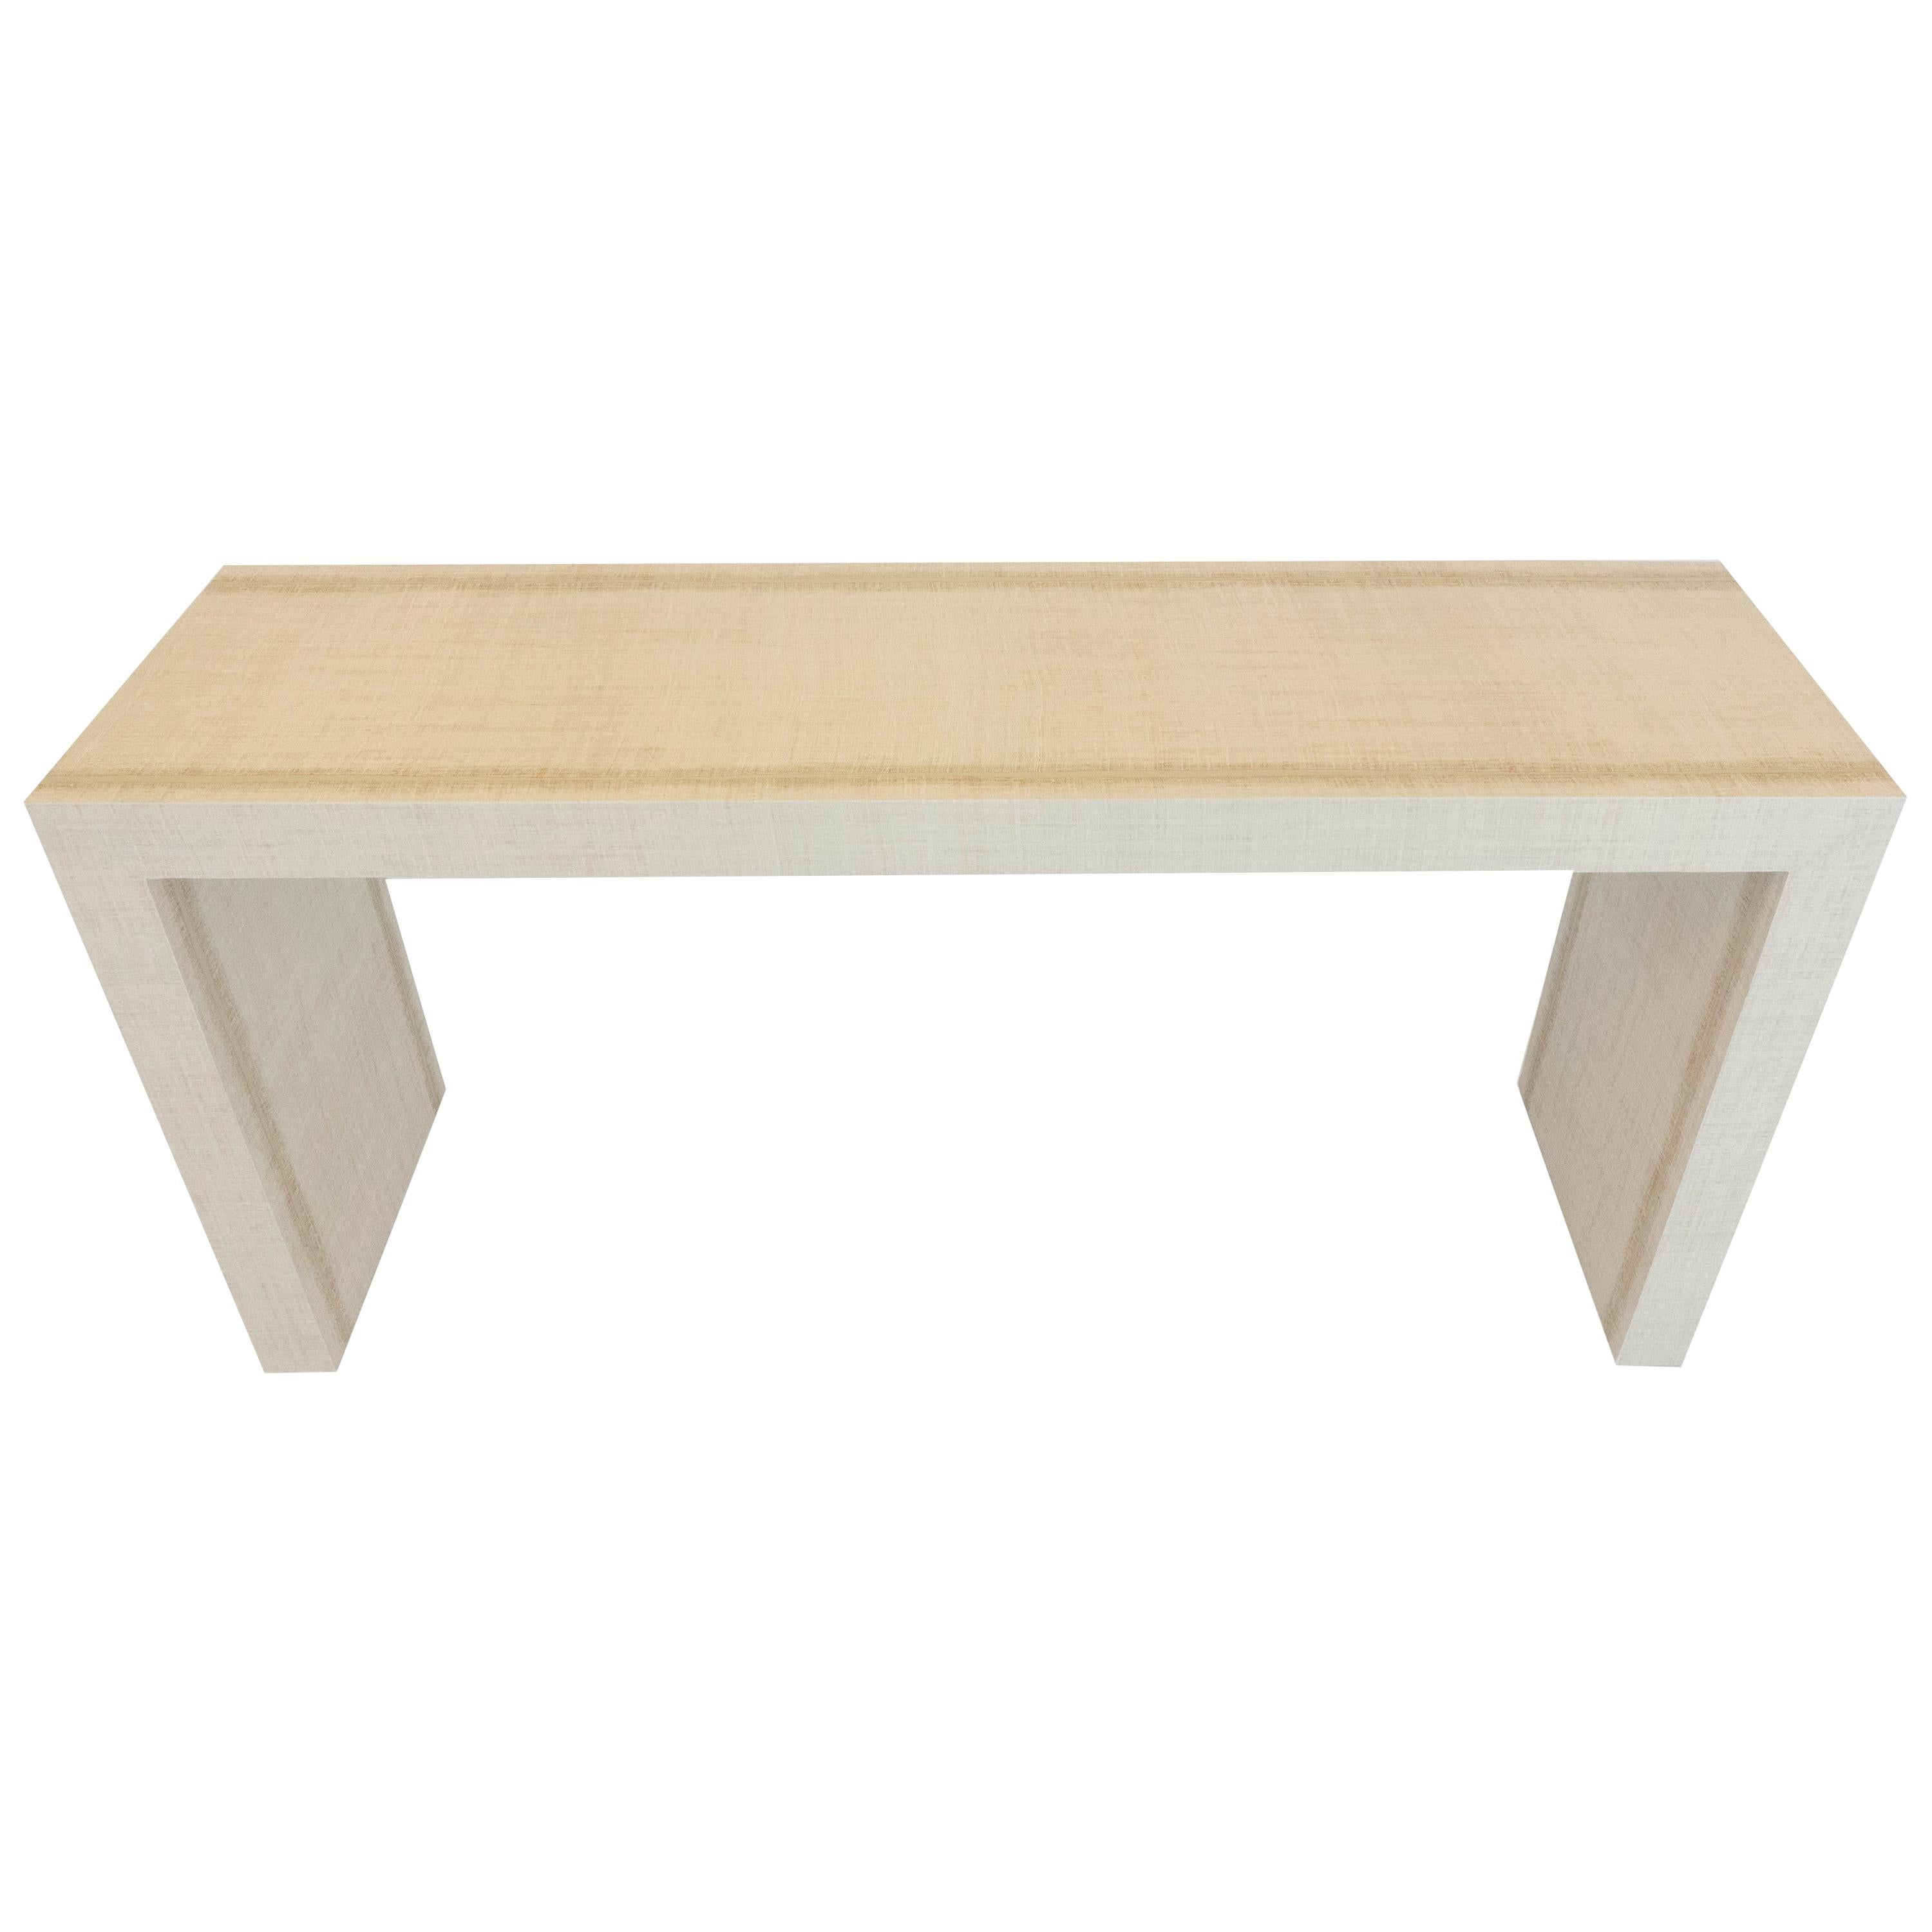 Parsons Tables   259 For Sale On 1stdibs